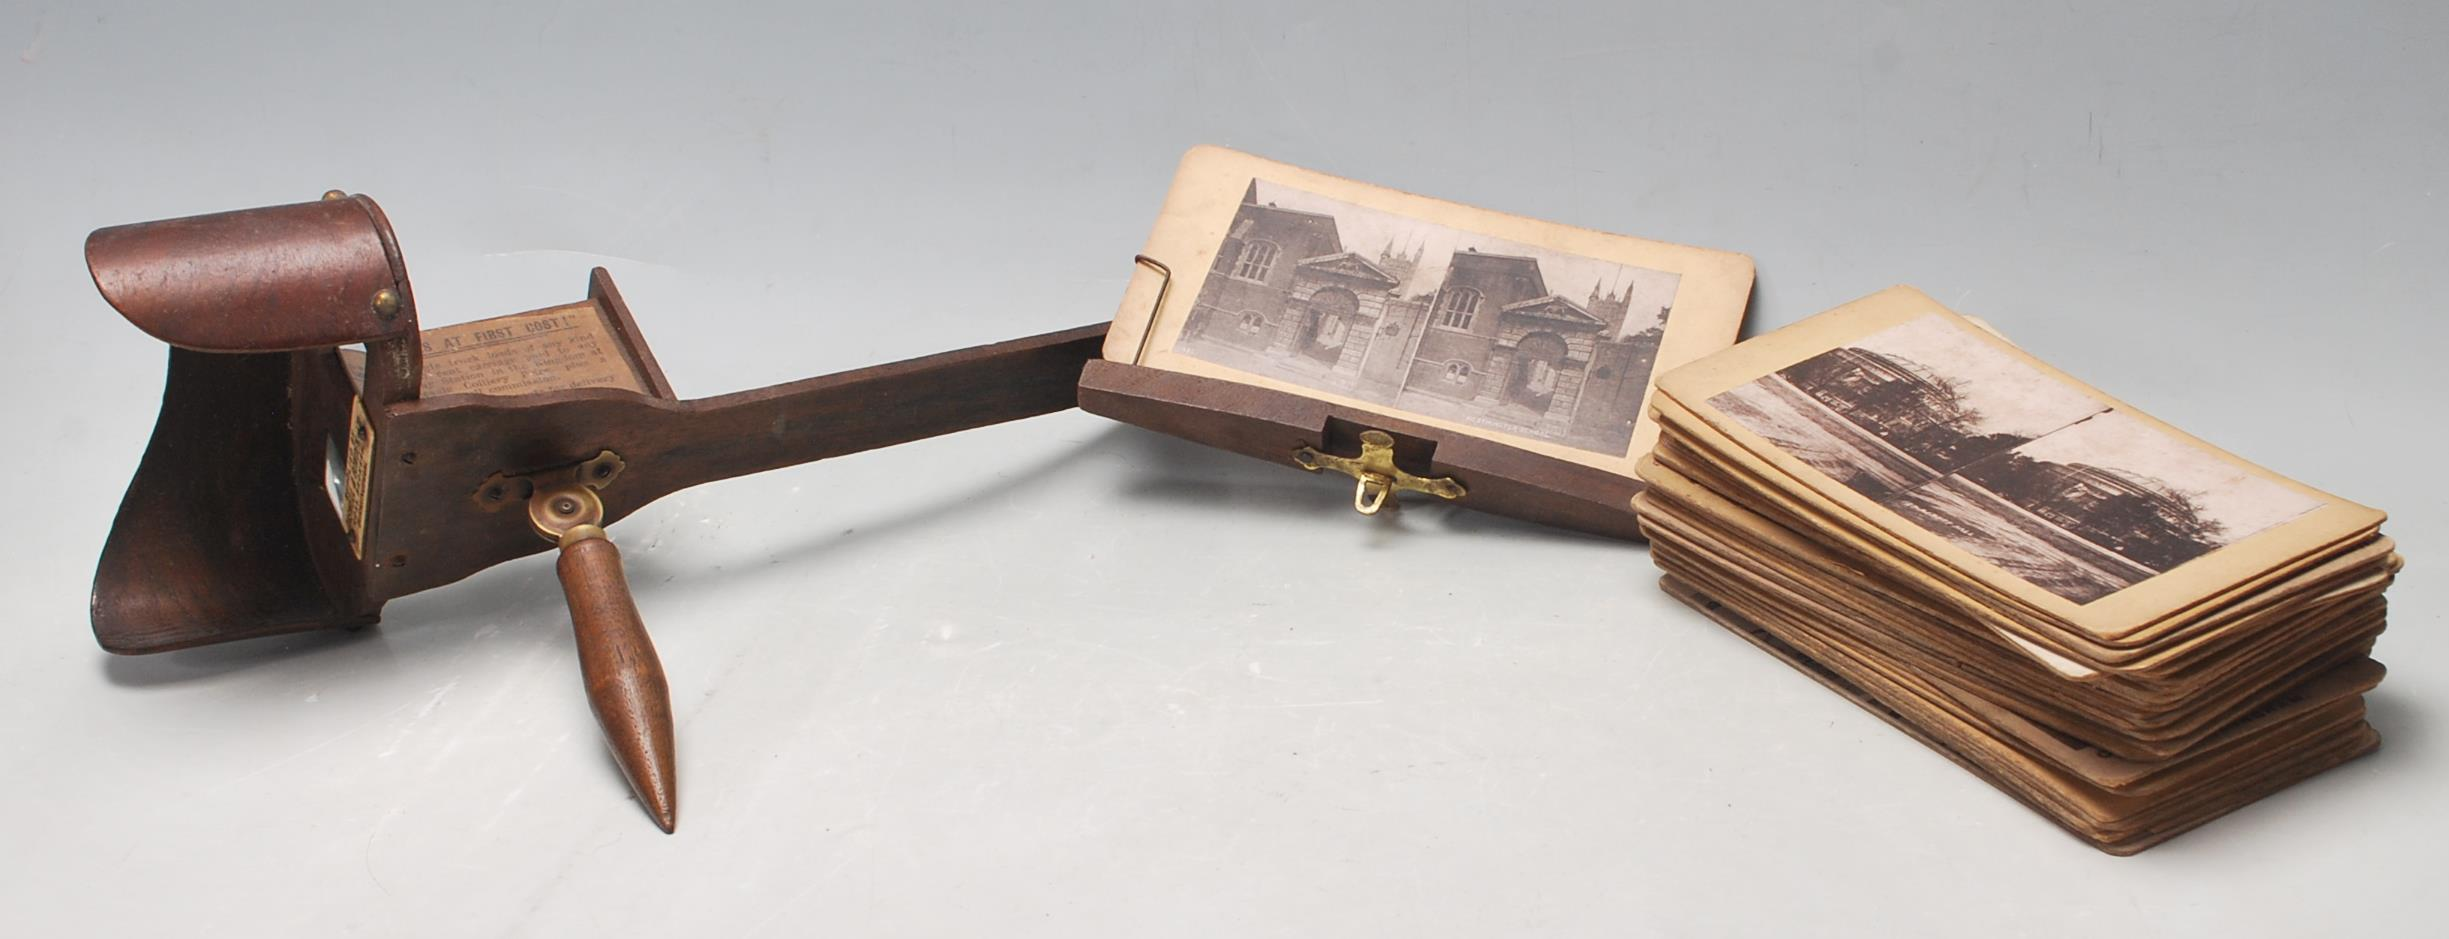 A LATE 19TH CENTURY VICTORIAN STEREOSCOPE VIEWER WITH SLIDES OF LONDON, BIRMINGHAM AND SOUTH AFRICA - Image 2 of 5